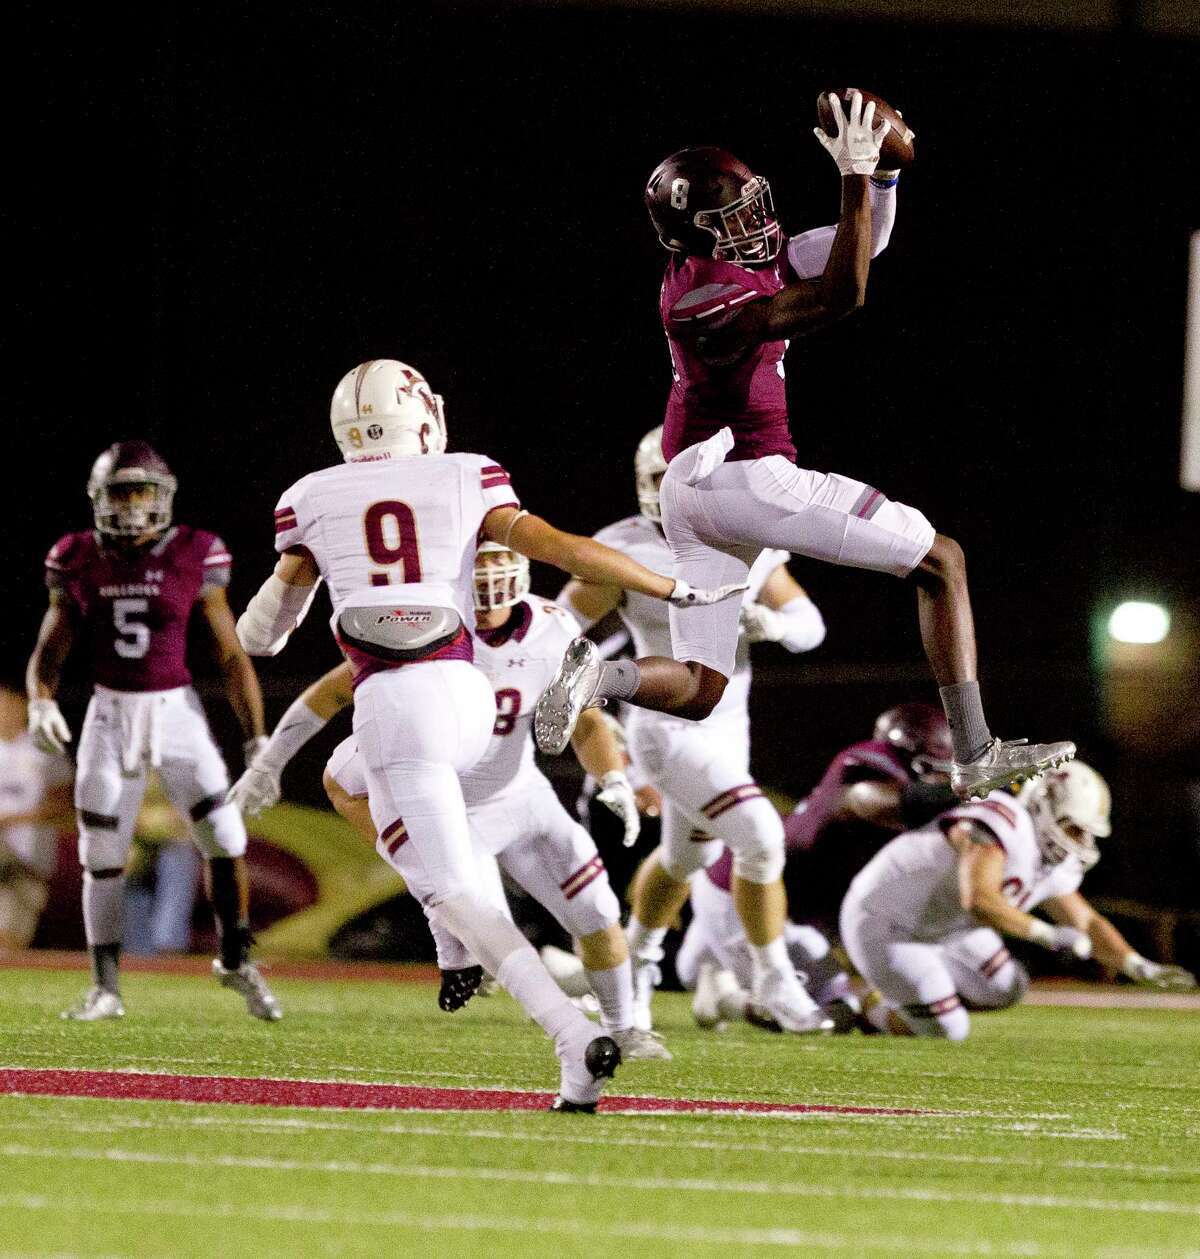 Magnolia wide receiver Michael Woods (8) catches a high pass from quarterback Reese Mason during the first quarter of a District 20-5A high school football game, Friday Oct. 20, 2017, in Magnolia.